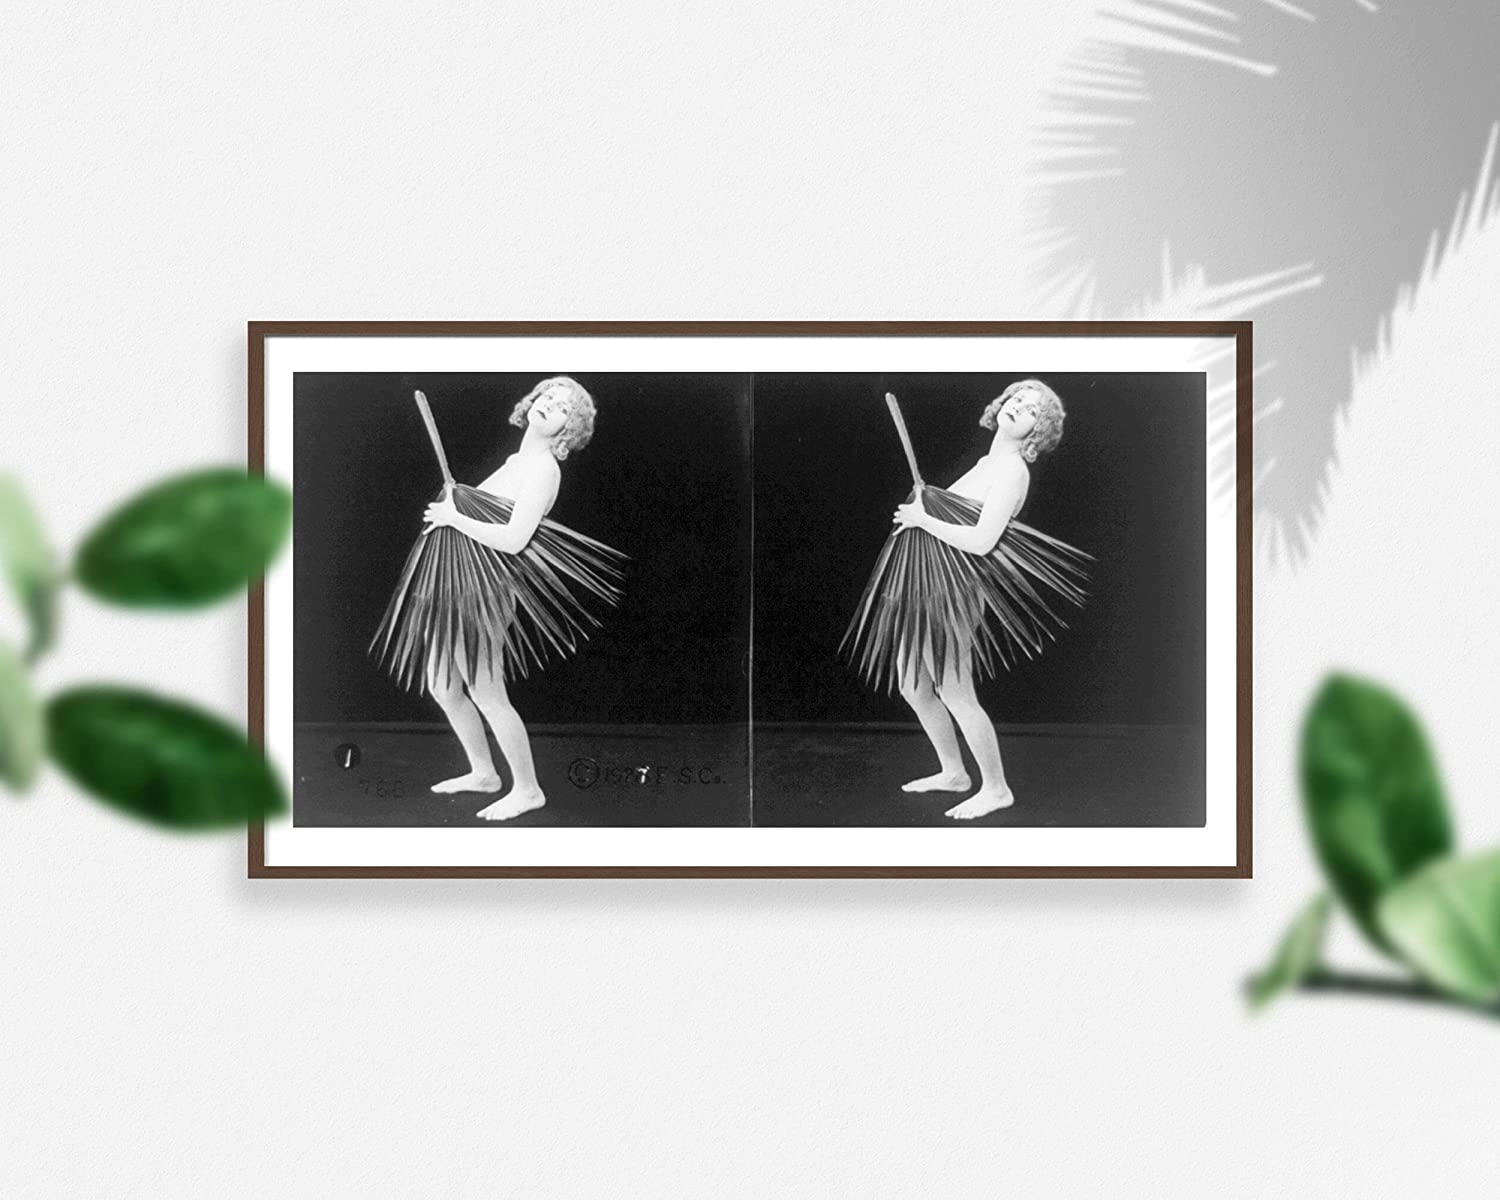 INFINITE PHOTOGRAPHS Photo: The Palmetto supreme Nude Woman Industry No. 1 Young Girl